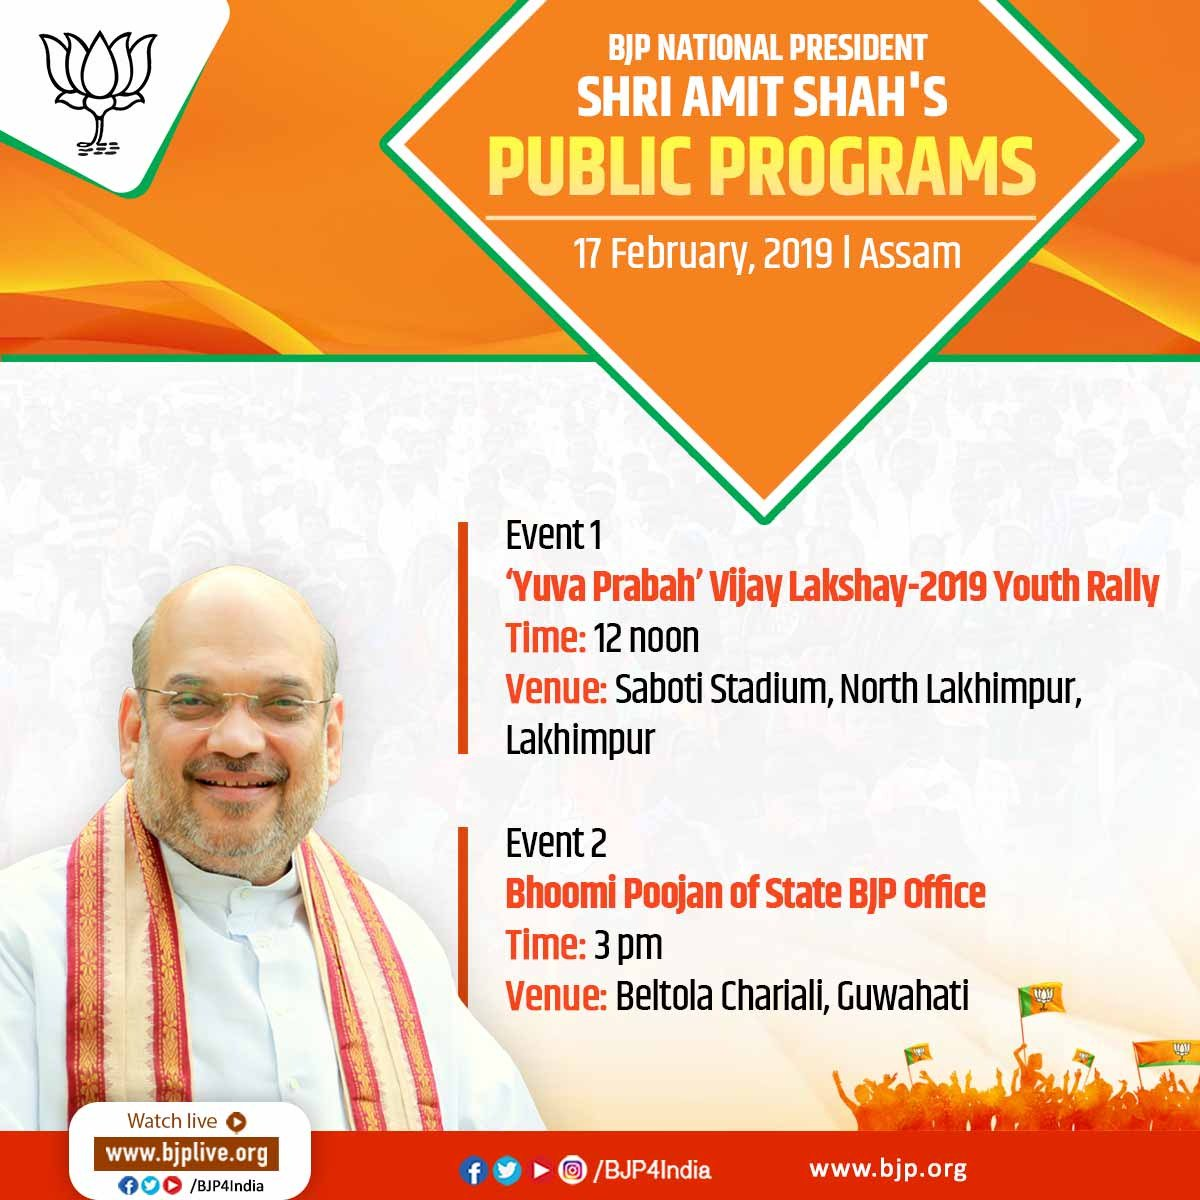 Schedule of BJP National President Shri @AmitShah's public programs on 17 February 2019 in Assam. Watch at http://facebook.com/BJP4India.